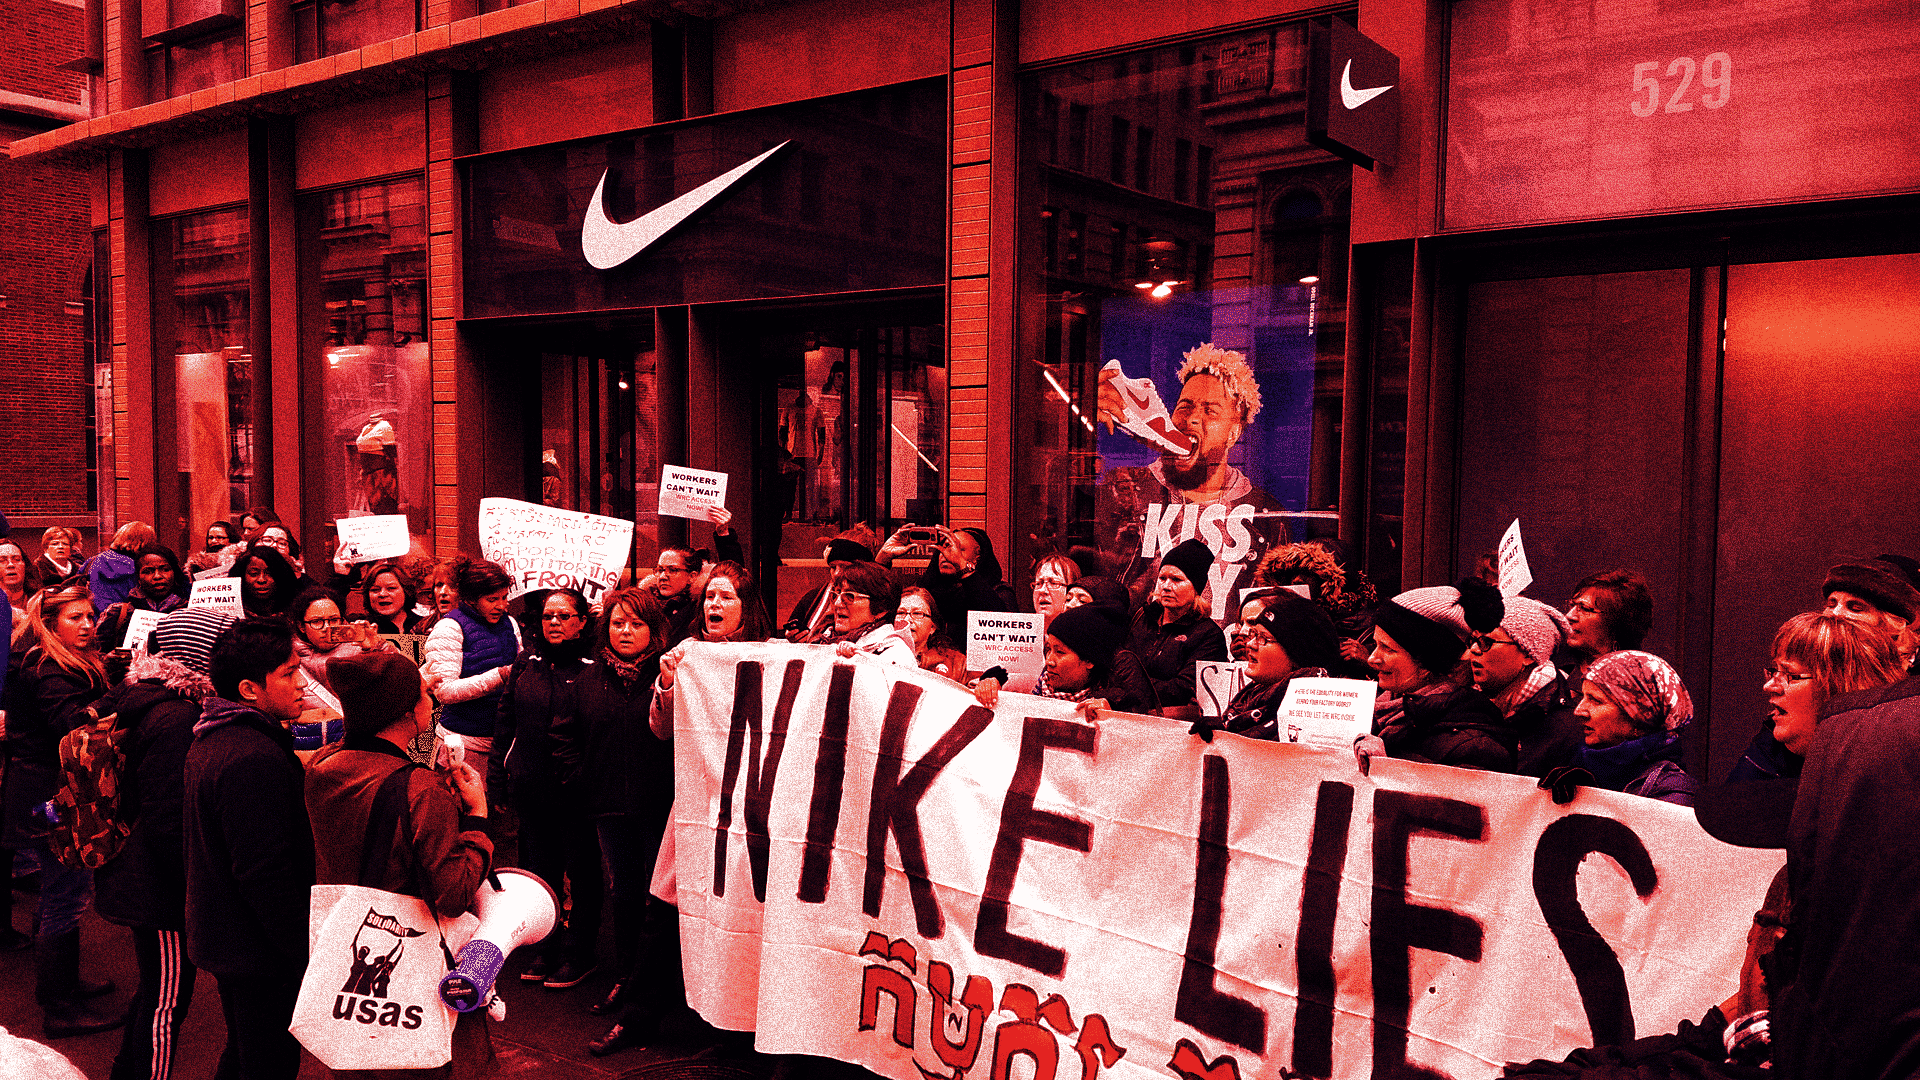 Nike Protest